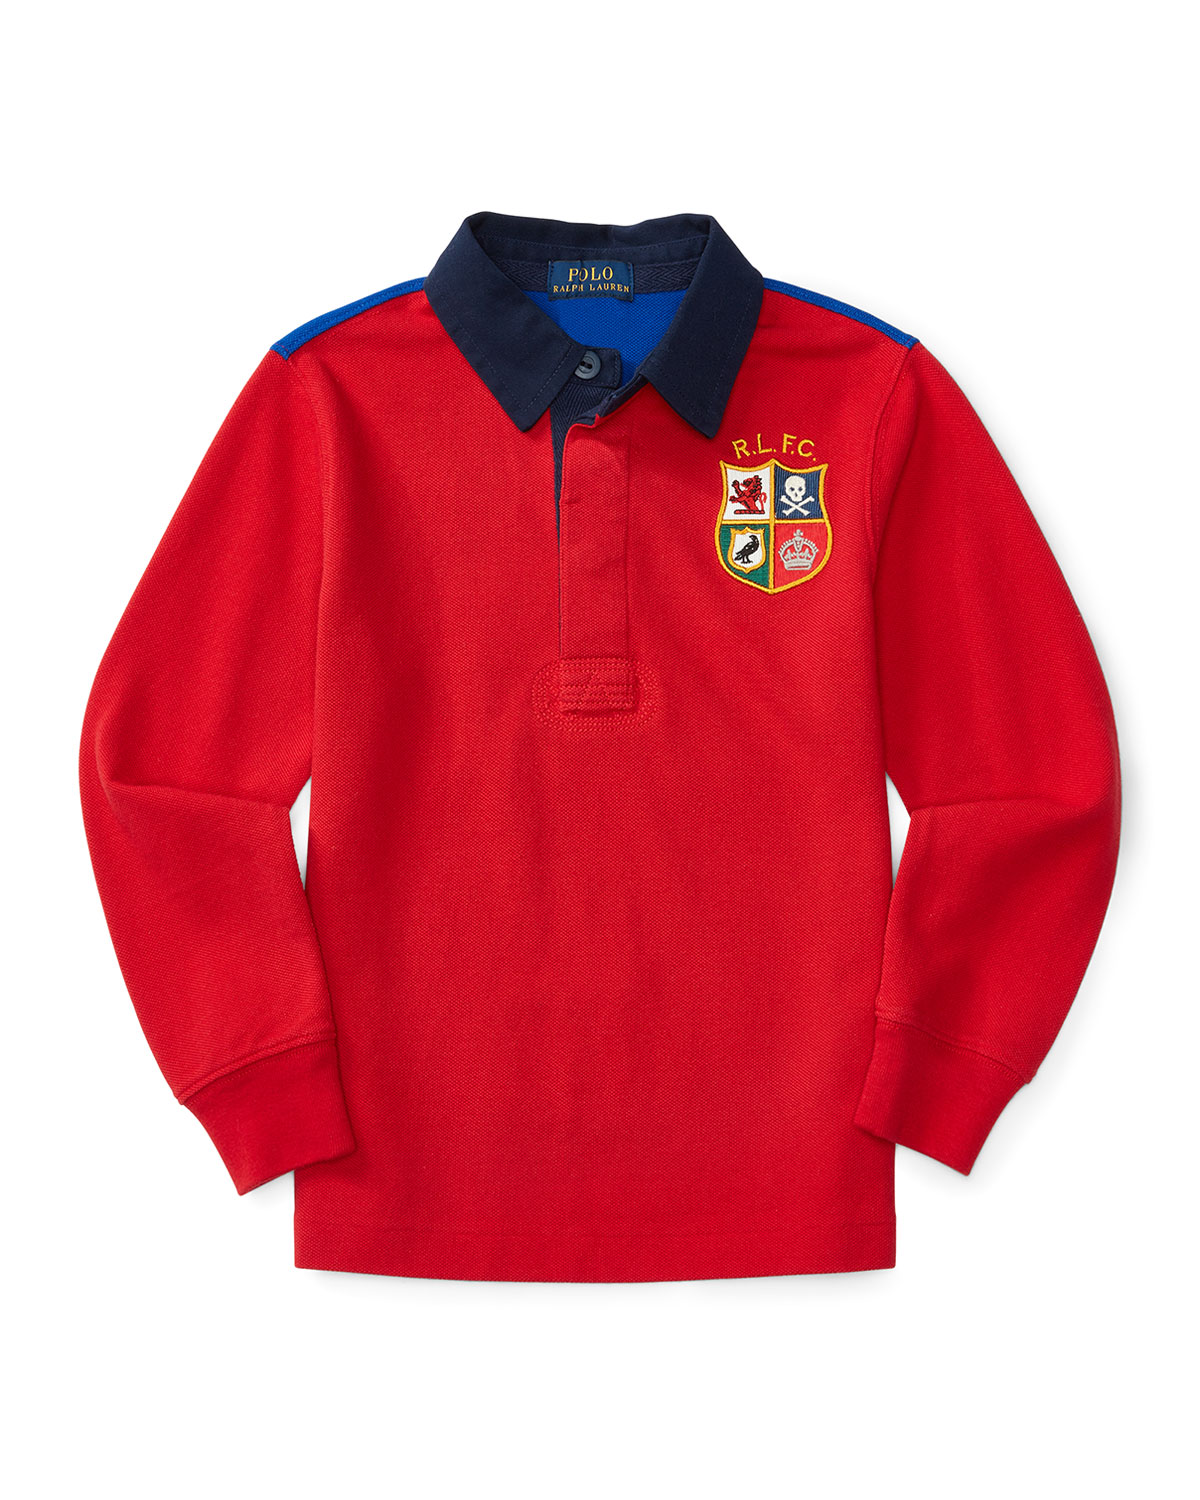 Long-Sleeve Cotton Mesh Two-Tone Rugby Shirt, Red, Size 2-7